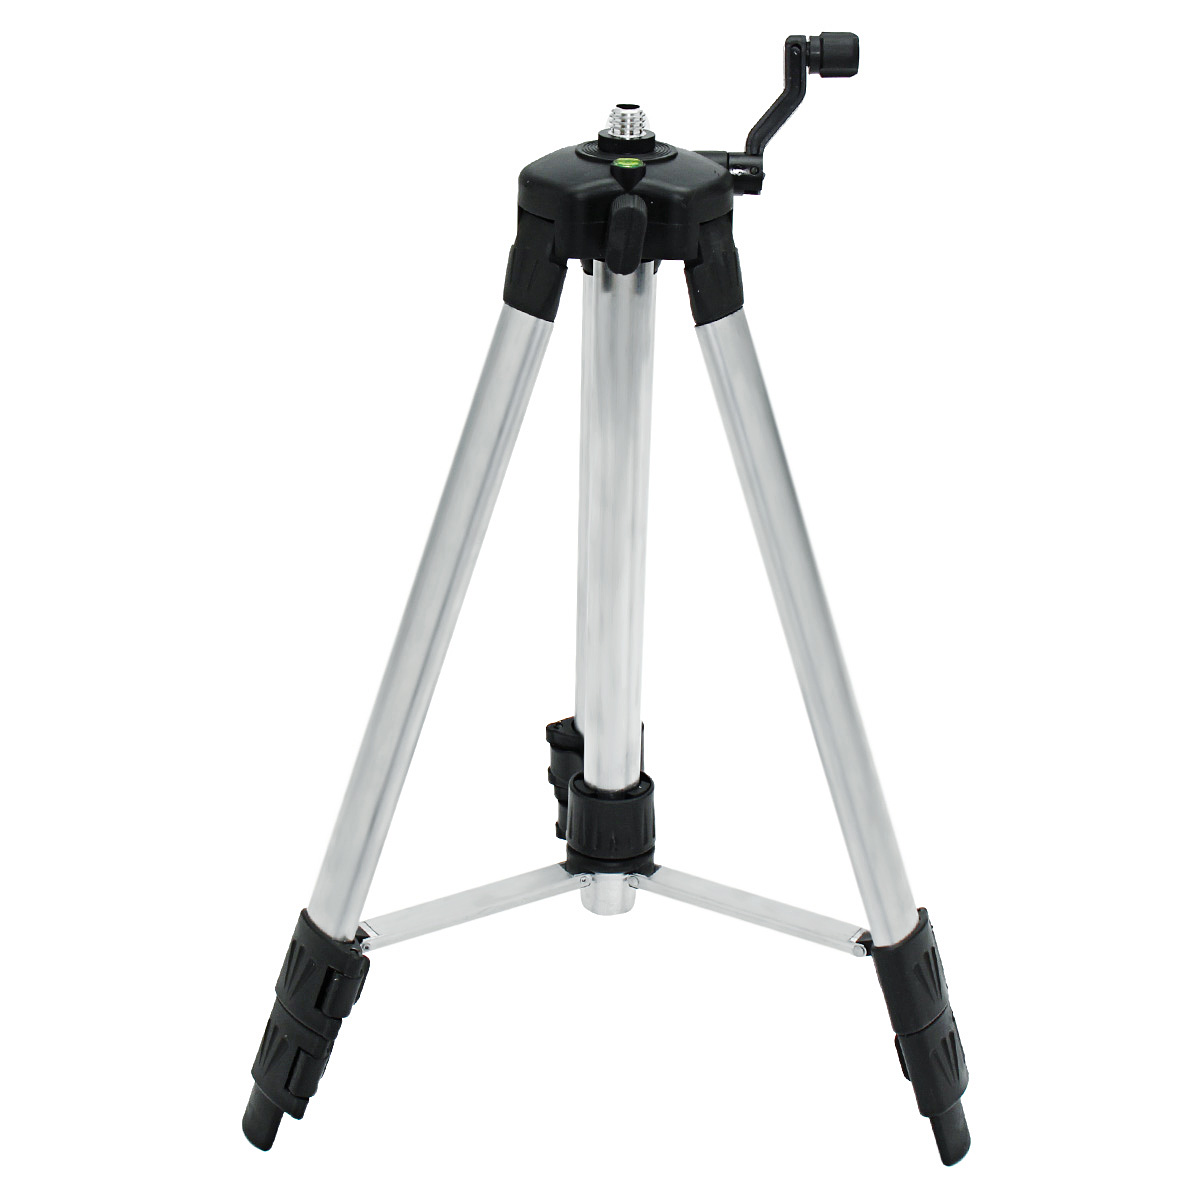 Professional Tripod Adjustable for Rotary Laser Leveling Measuring Tool Instruments Line Level Extension Support 45cm-95cm цена